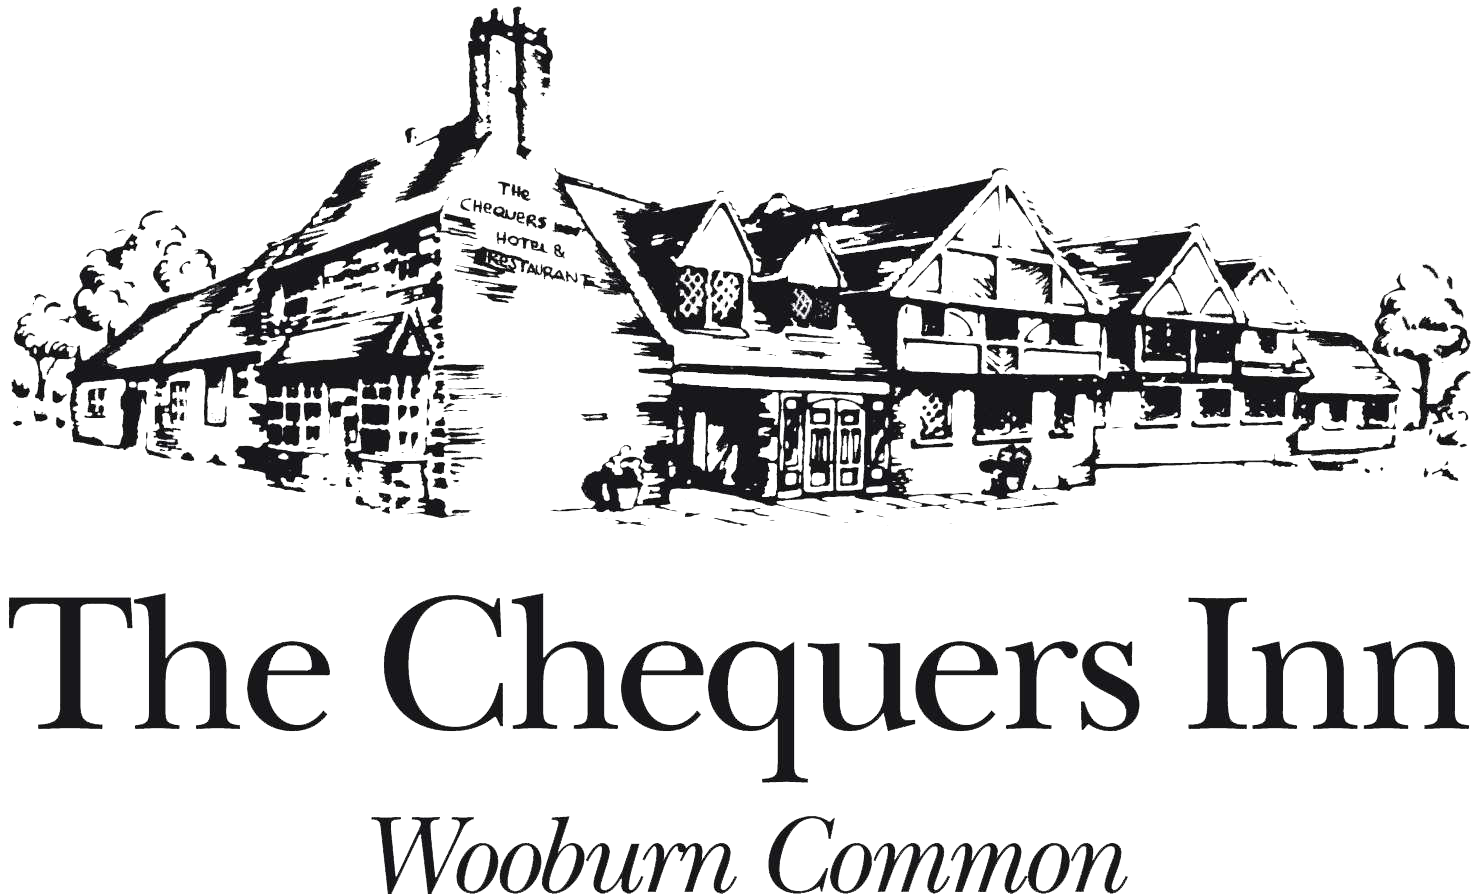 CHEQUERS INN AT WOOBURN